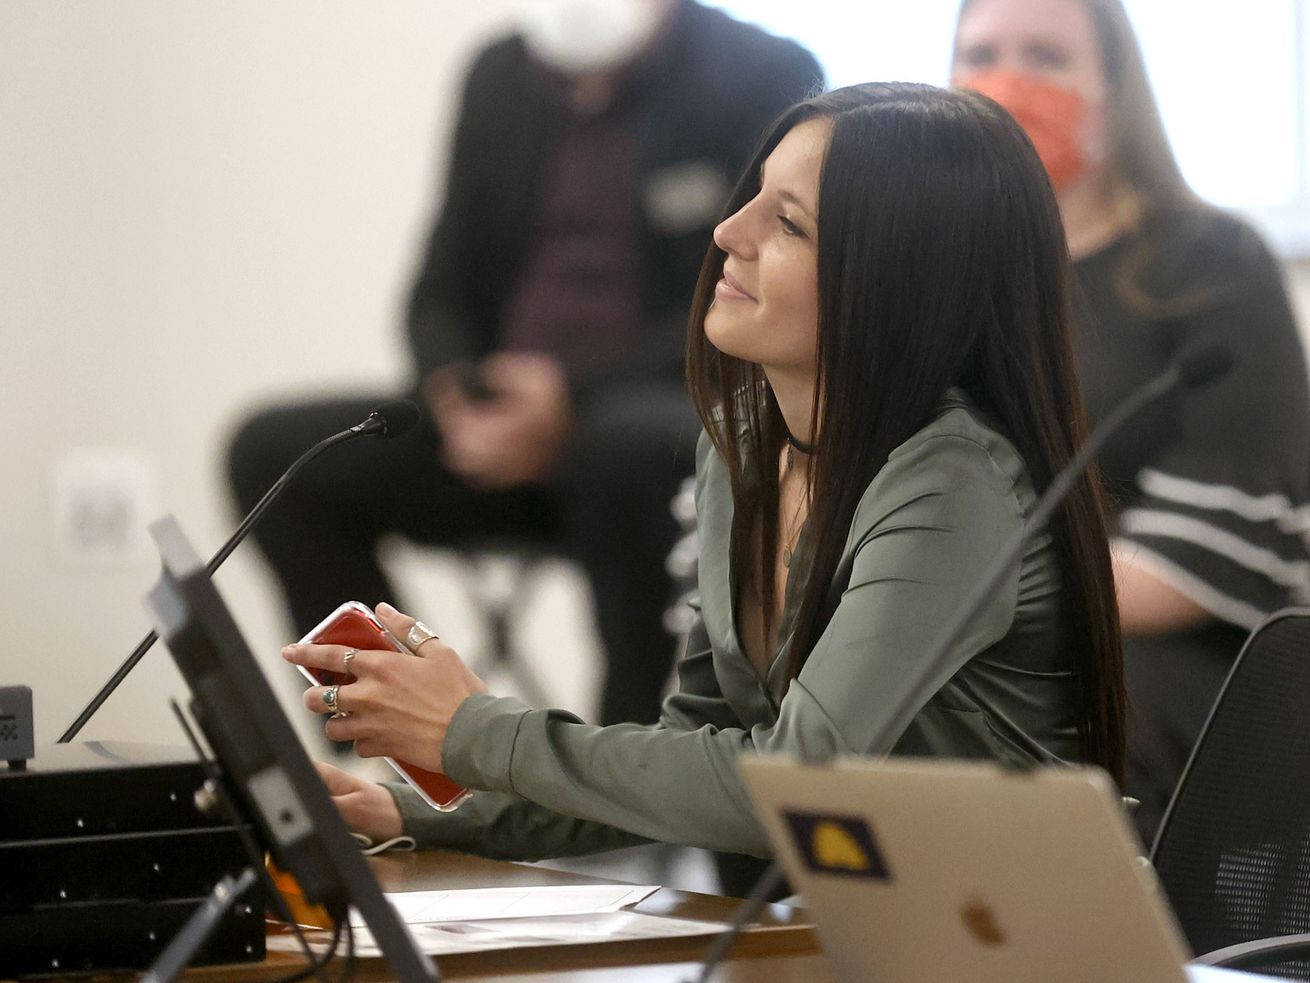 Alison Pray, a Southern Utah University track and cross-country athlete, speaks in support of HB302 during a House Education Committee meeting at the State Office Building in Salt Lake City on Thursday, Feb. 11, 2021. The bill would bar transgender athletes at public schools to participate in girls sports.